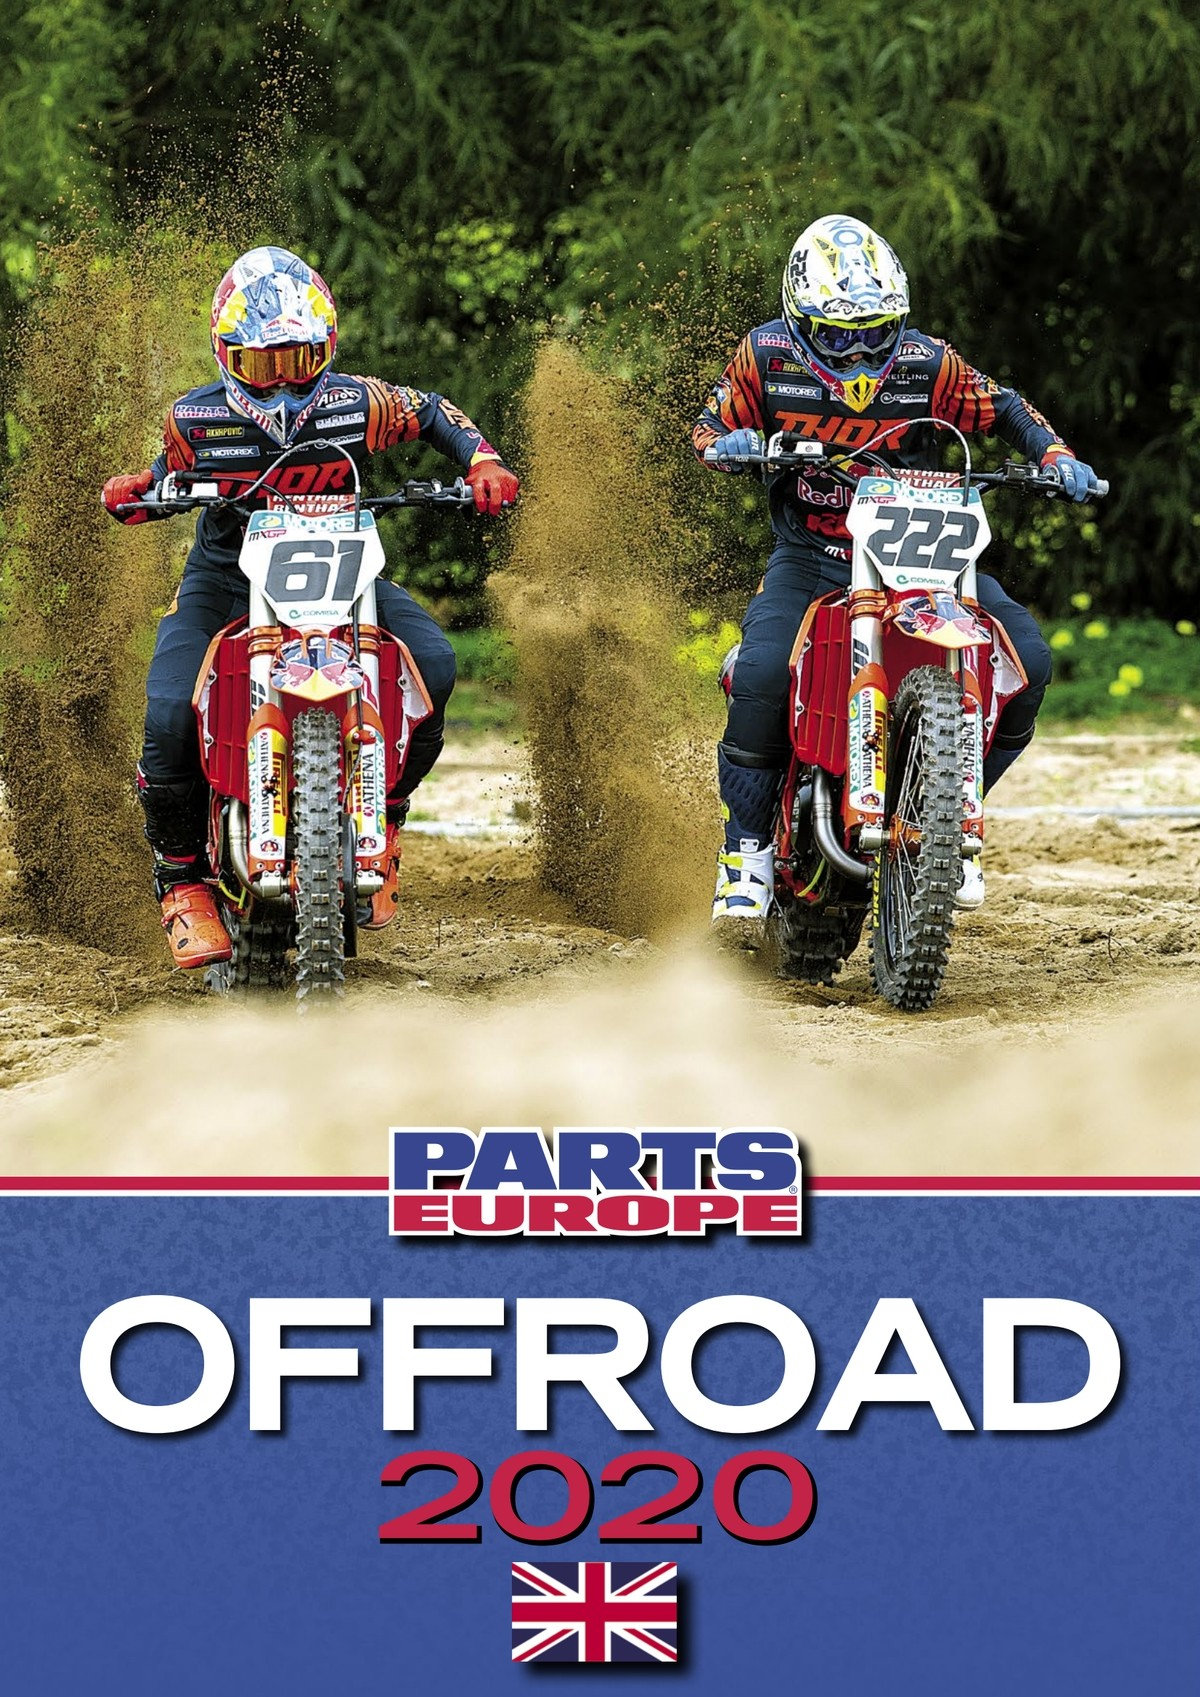 Catalog motociclete offroad Parts Europe 2020